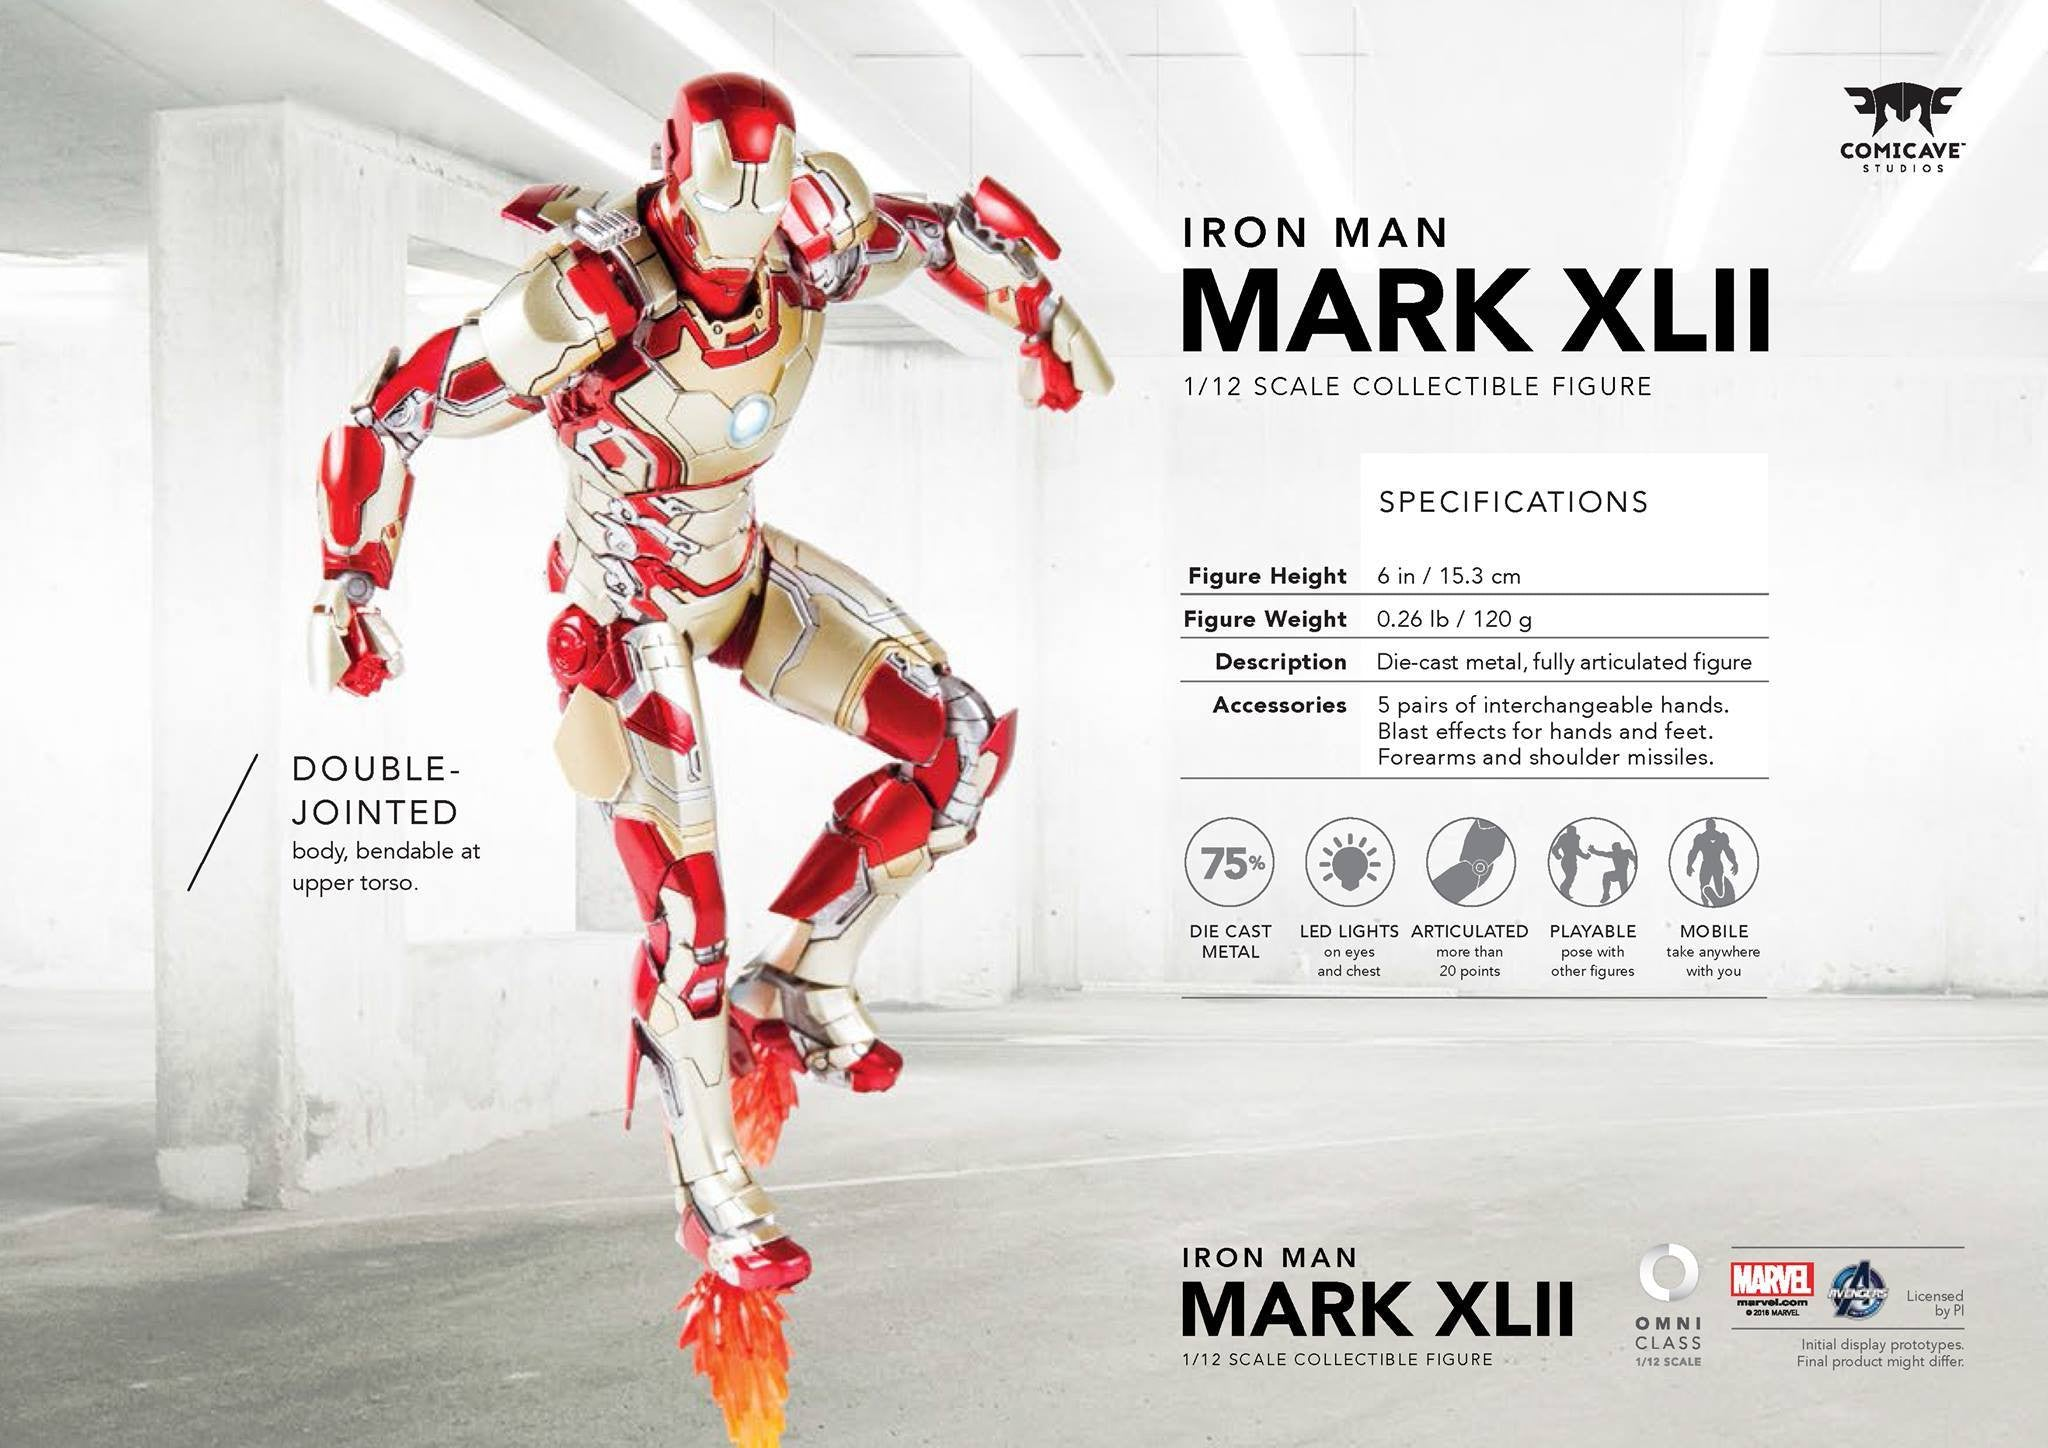 Comicave Studios - Omni Class: 1/12 Scale Iron Man Mark XLII with Sofa (SDCC 2016 EXCLUSIVE) - Marvelous Toys - 6